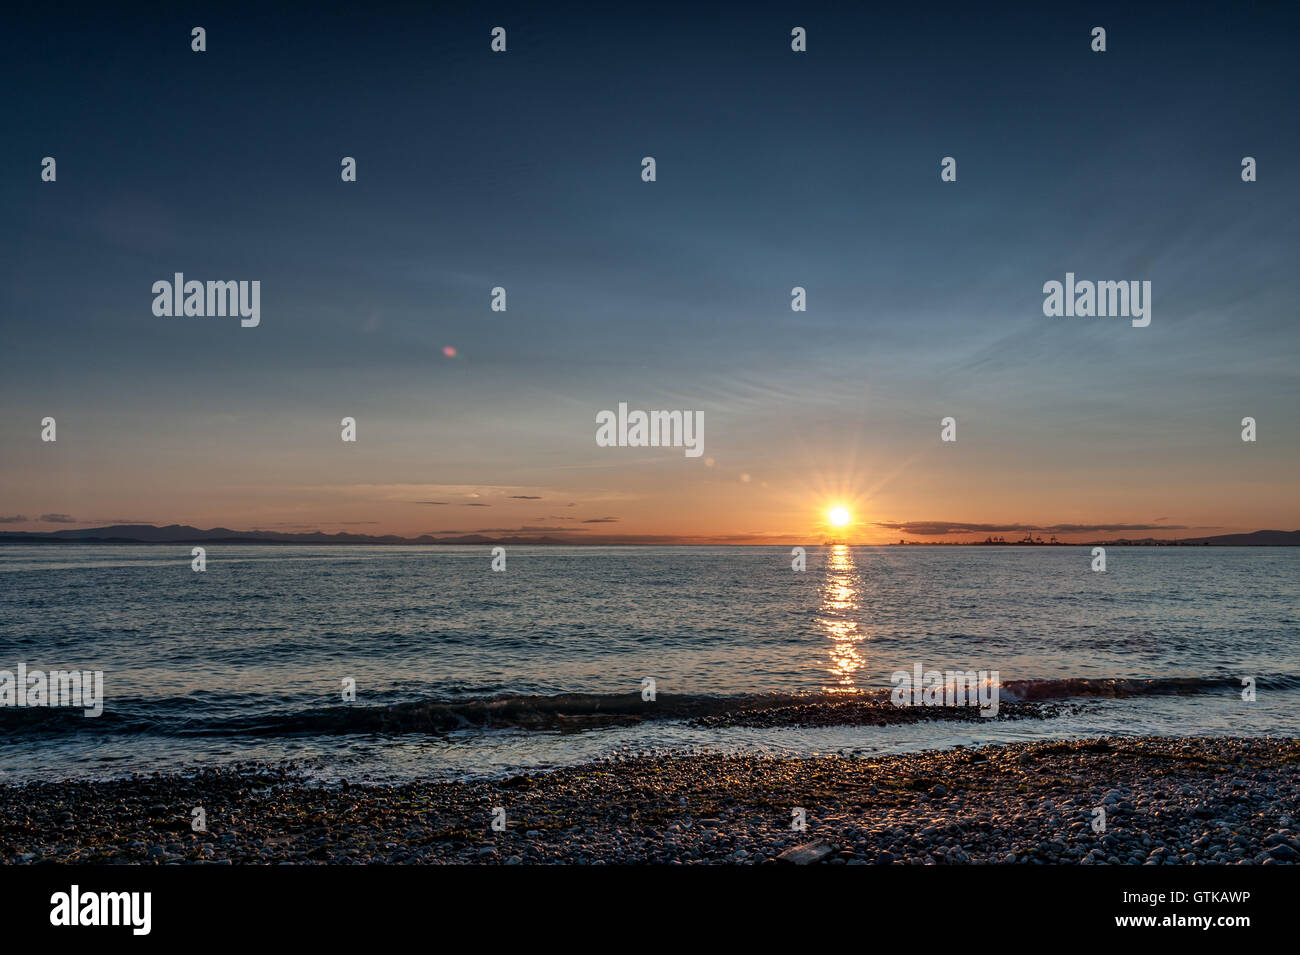 Point Roberts sunset  at moonlight over the beach with cranes in background, Washington State, SA - Stock Image